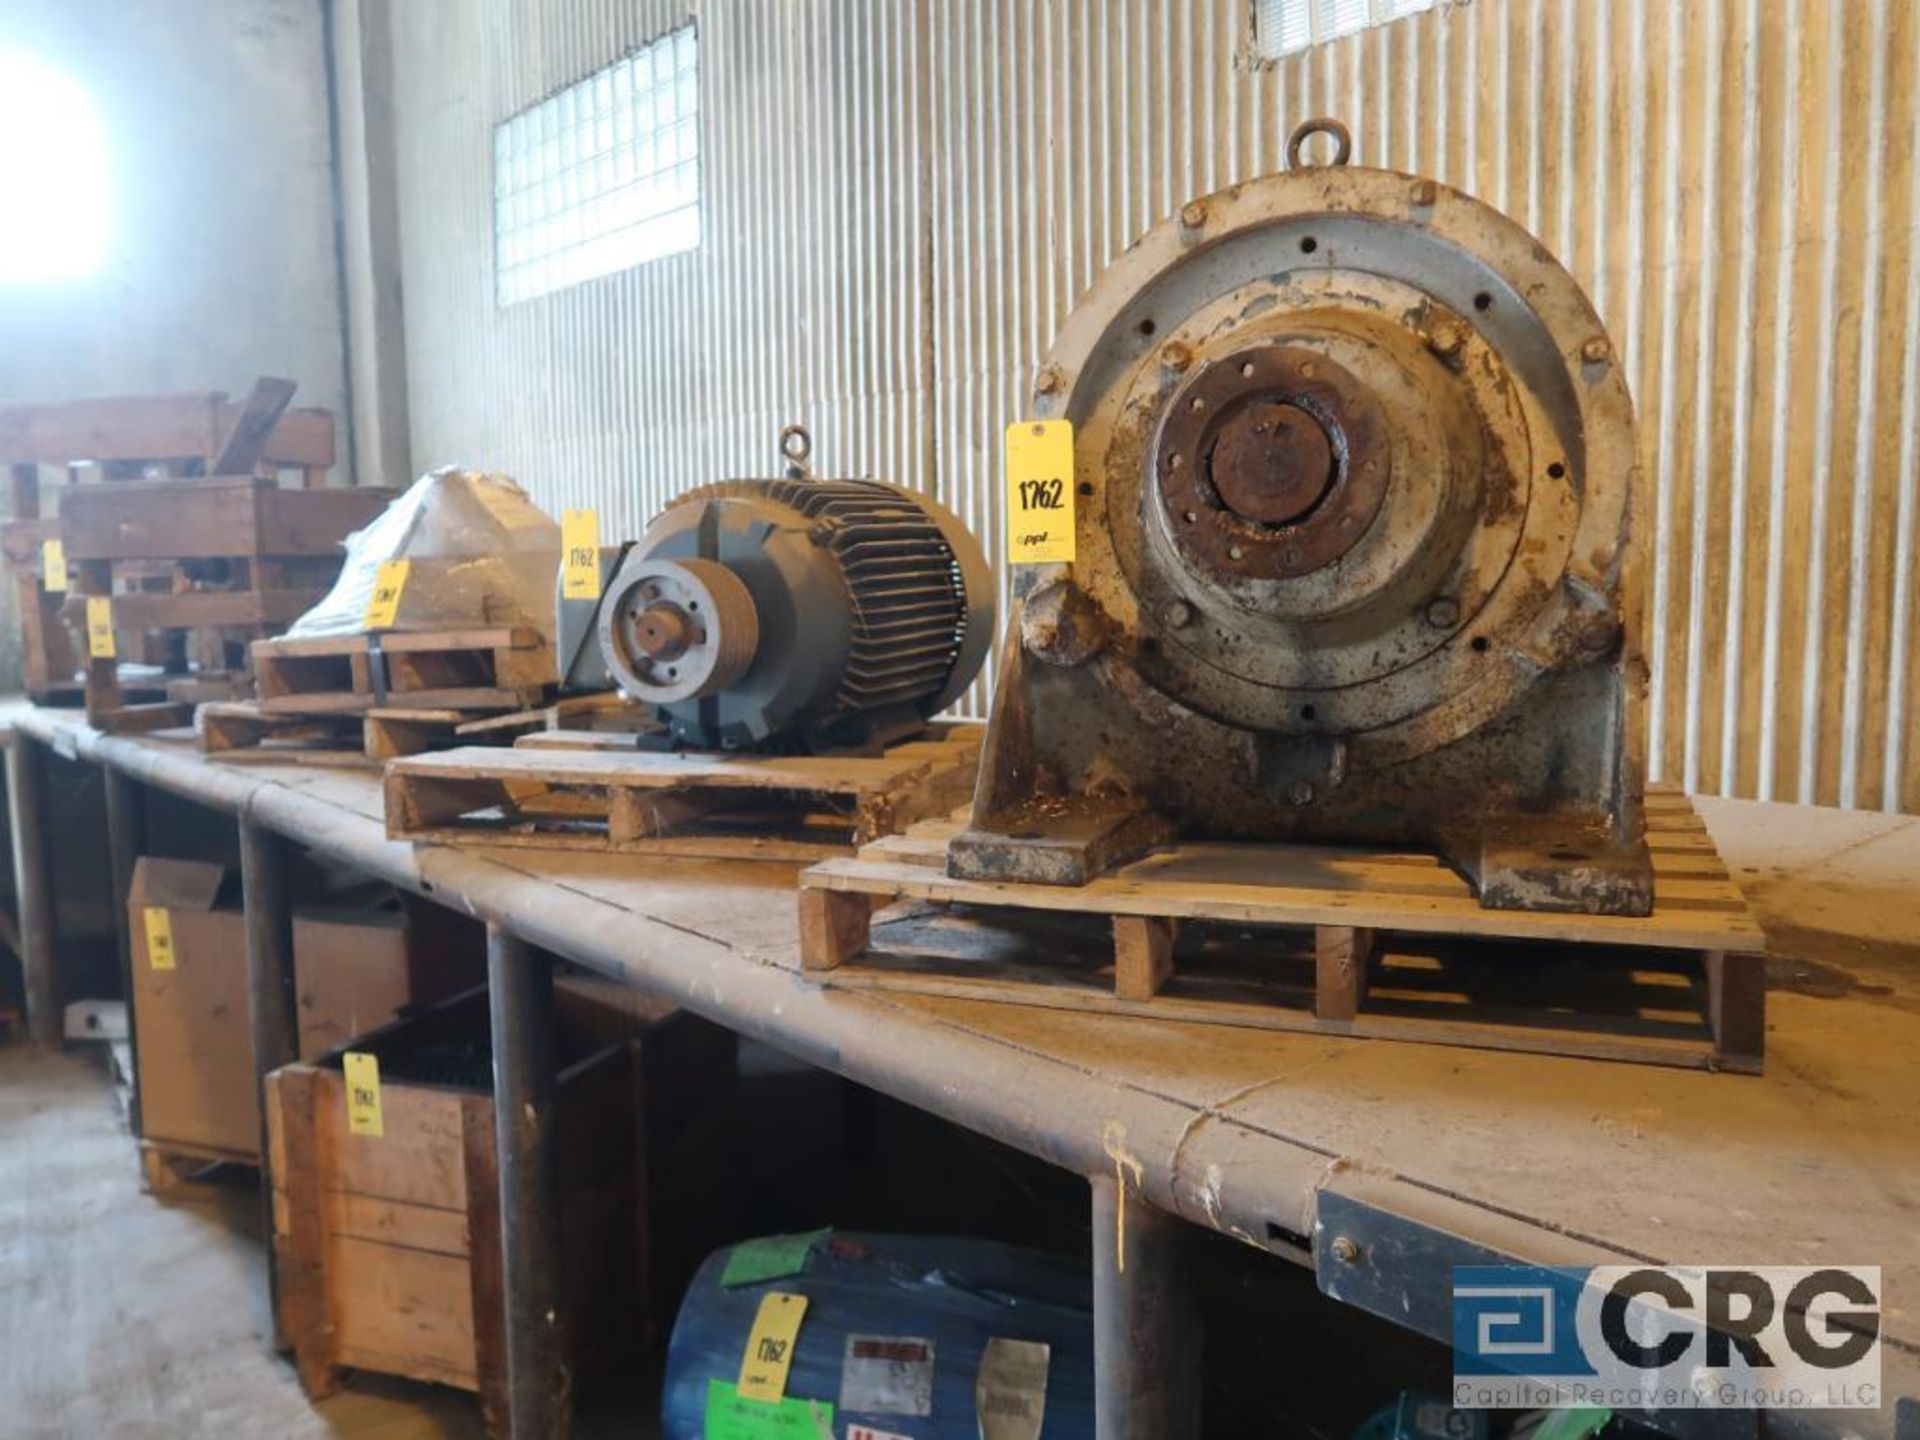 Lot of assorted motor, gear bearing housing, gear drive on metal rack (Next Bay Cage Area) - Image 6 of 16